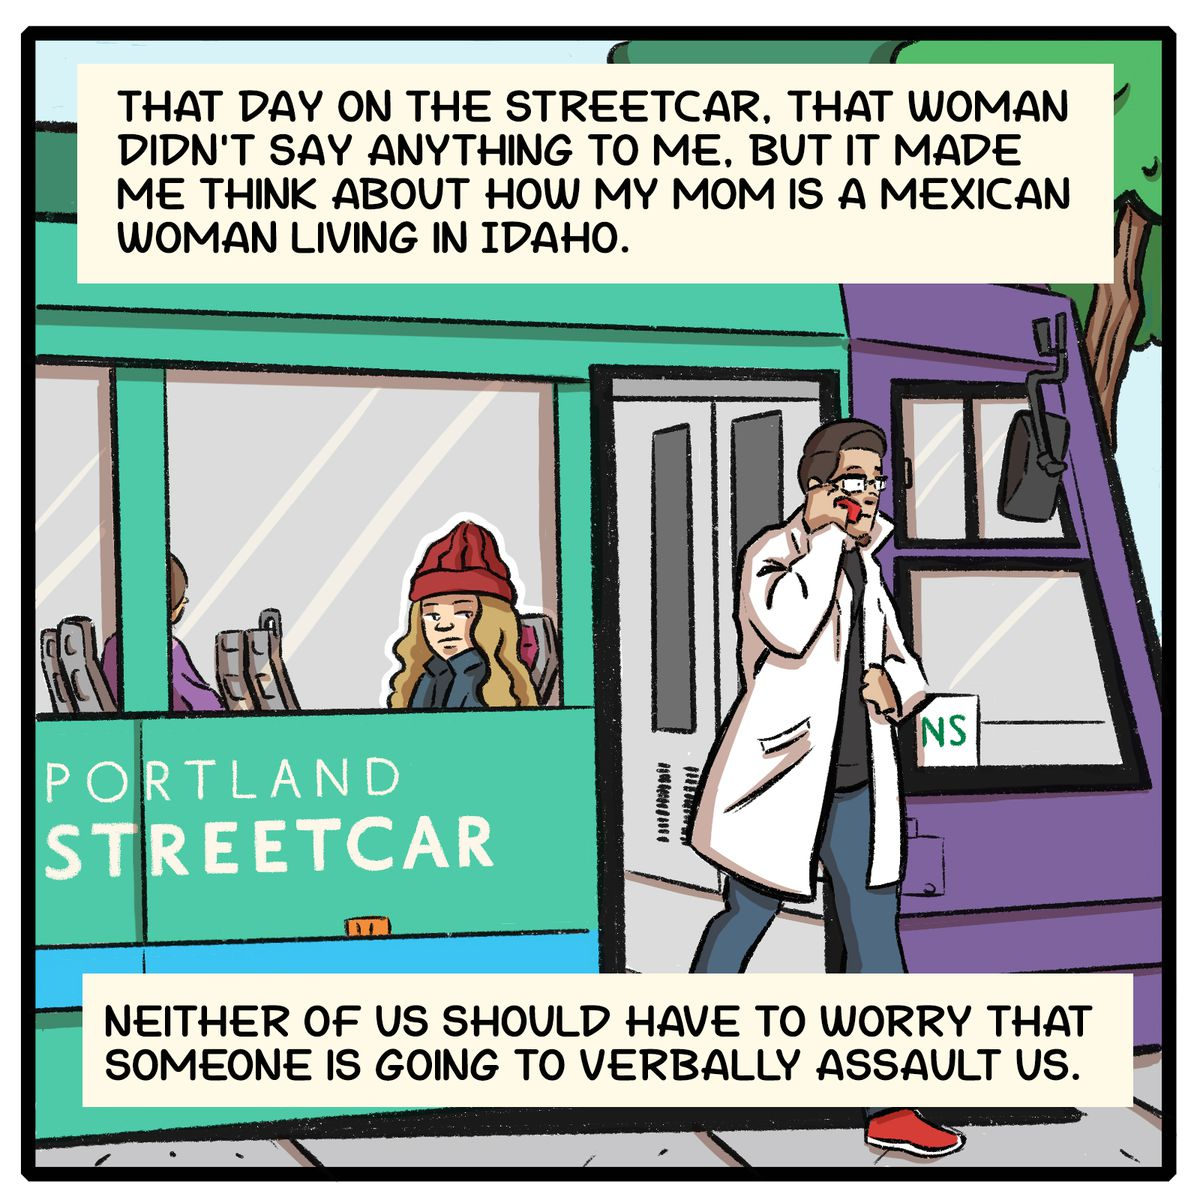 That day on the streetcar, that woman didn't say anything to me, but it made me think about how my mom is a Mexican woman living in Idaho. Neither of us should have to worry that someone is going to verbally assault us.